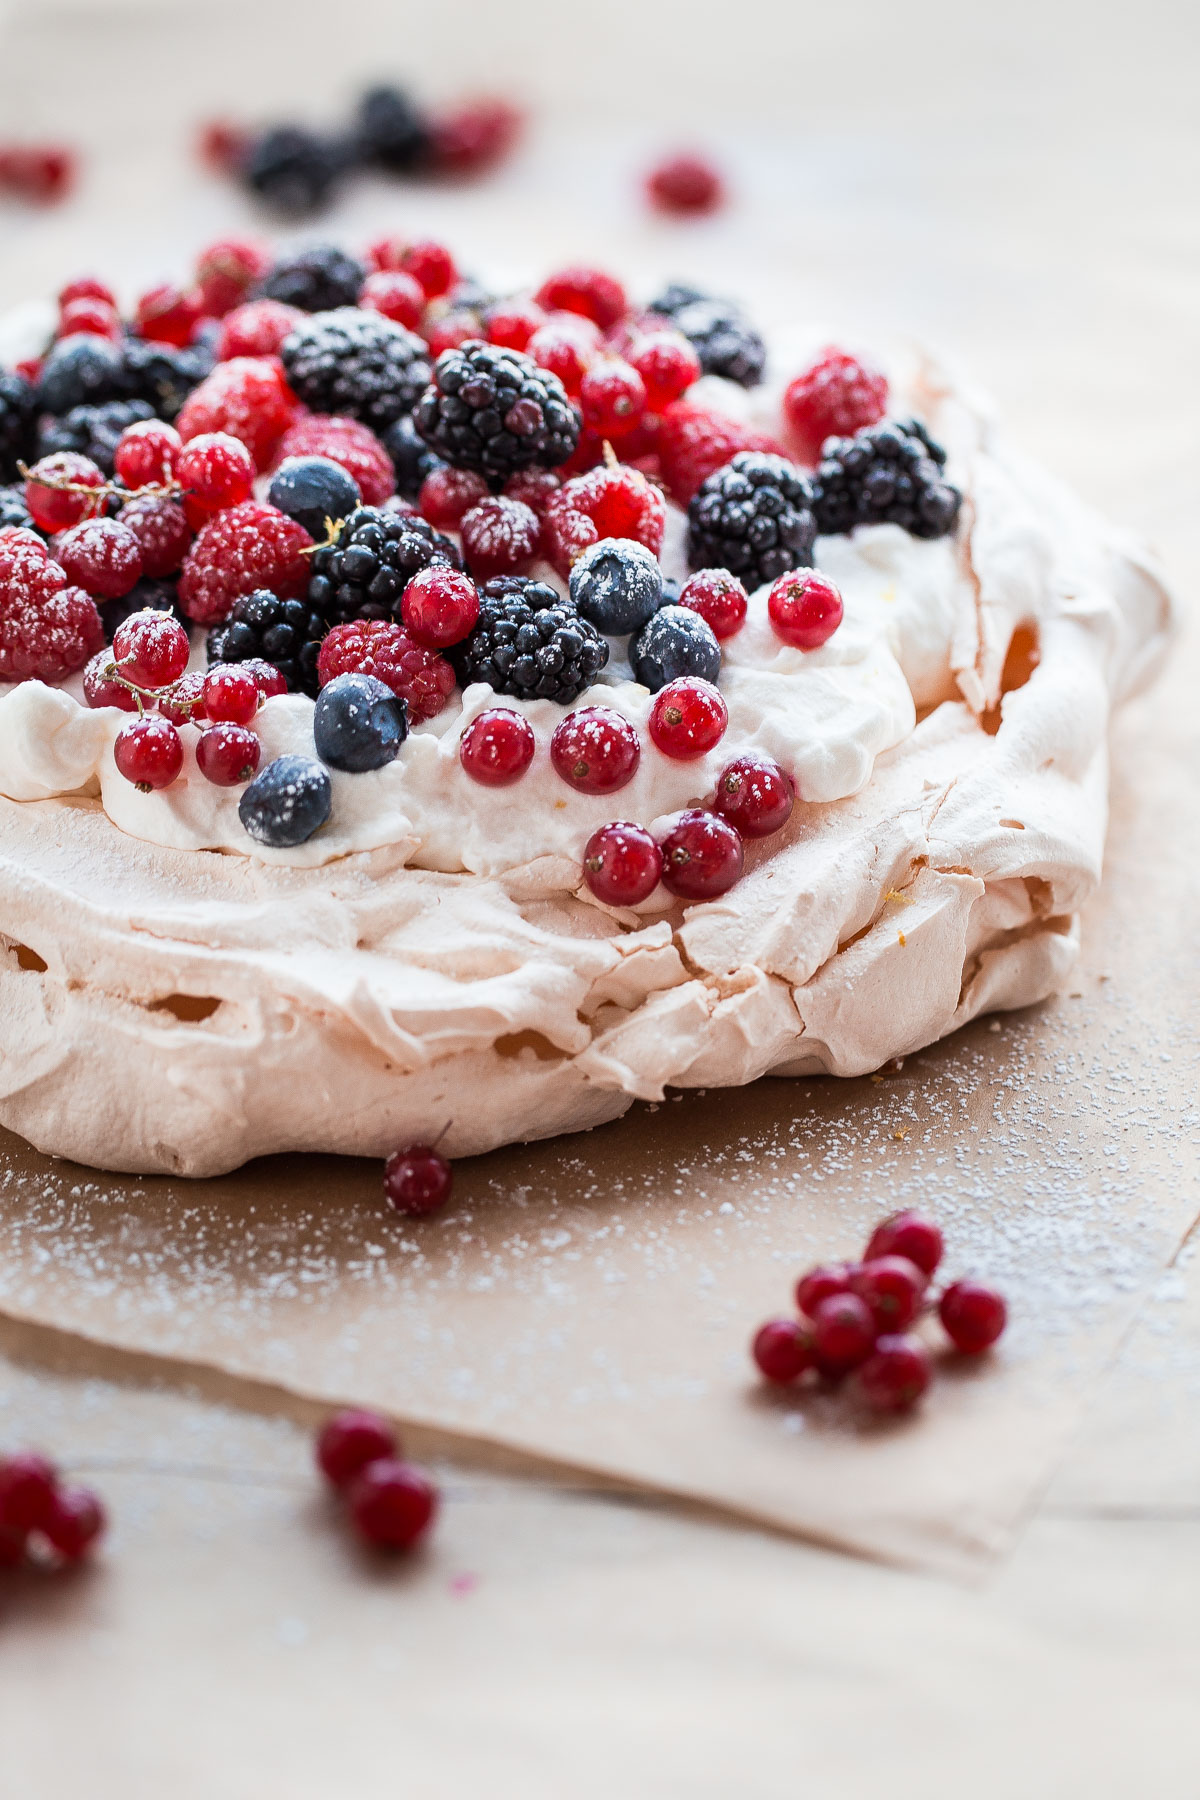 Cake To Serve With Fresh Berries